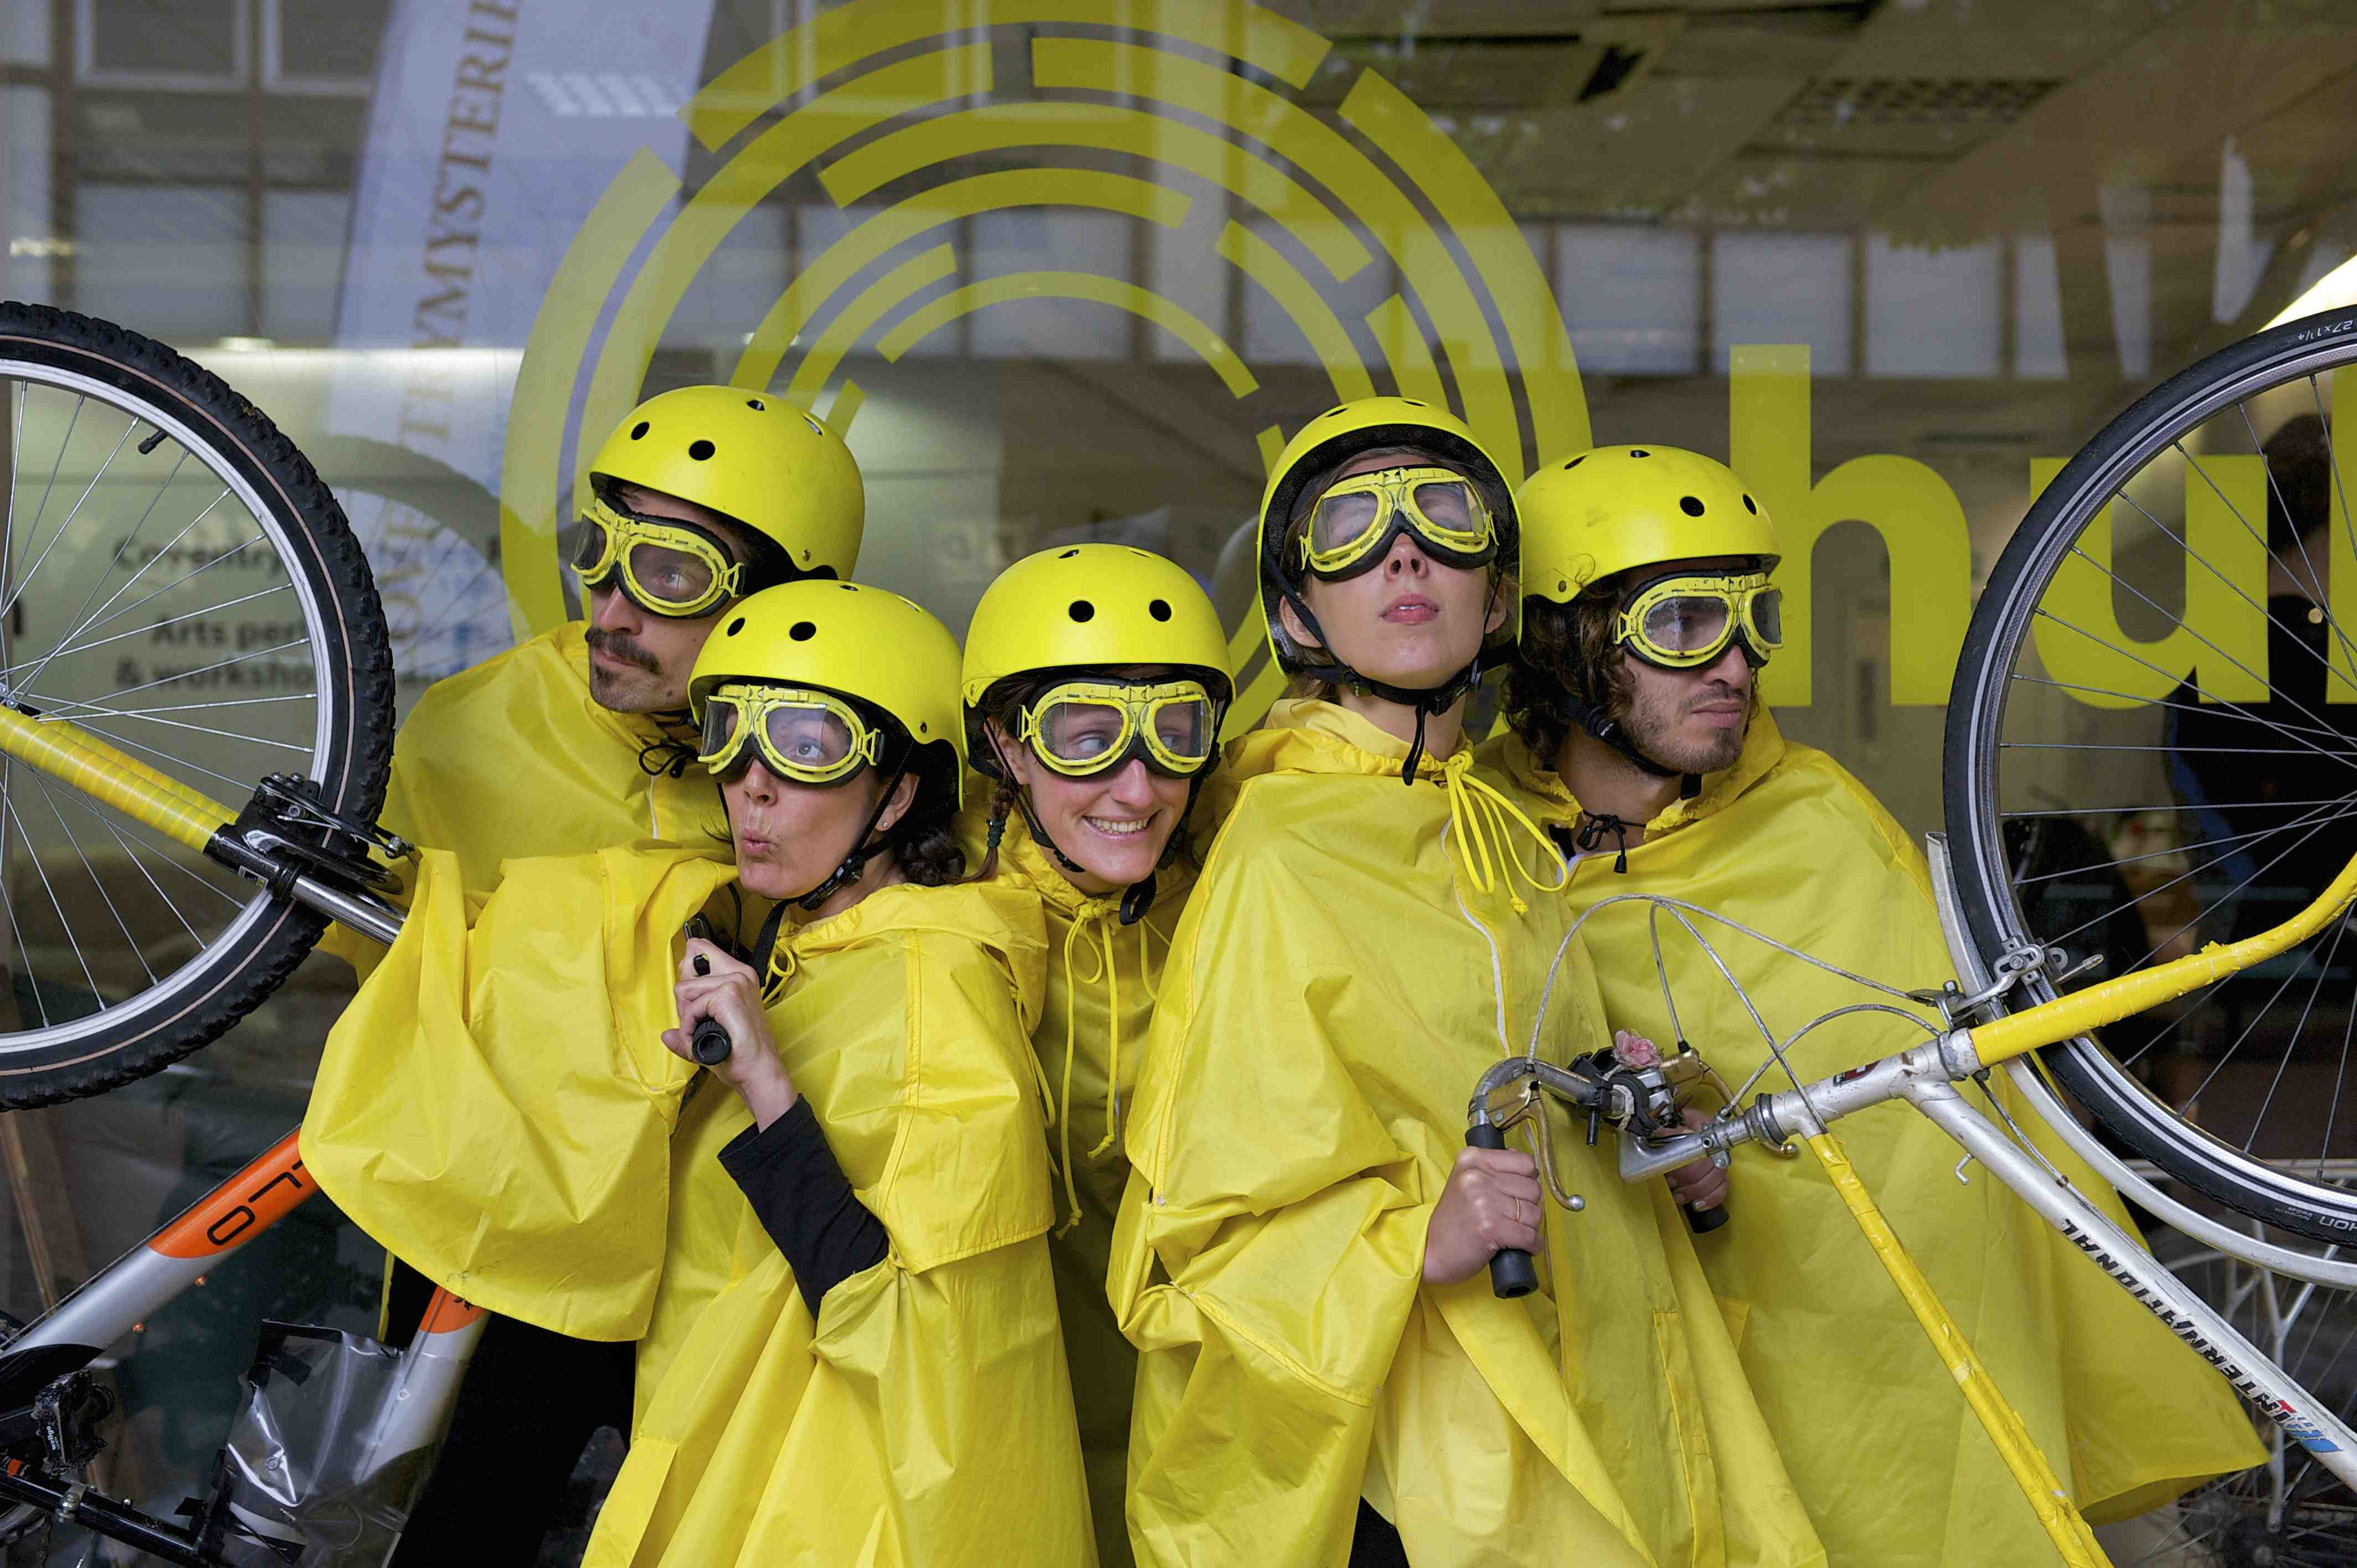 5 performers dressed in yellow cycling rain capes, yellow helmets and yellow goggles, strike a pose with 2 bikes